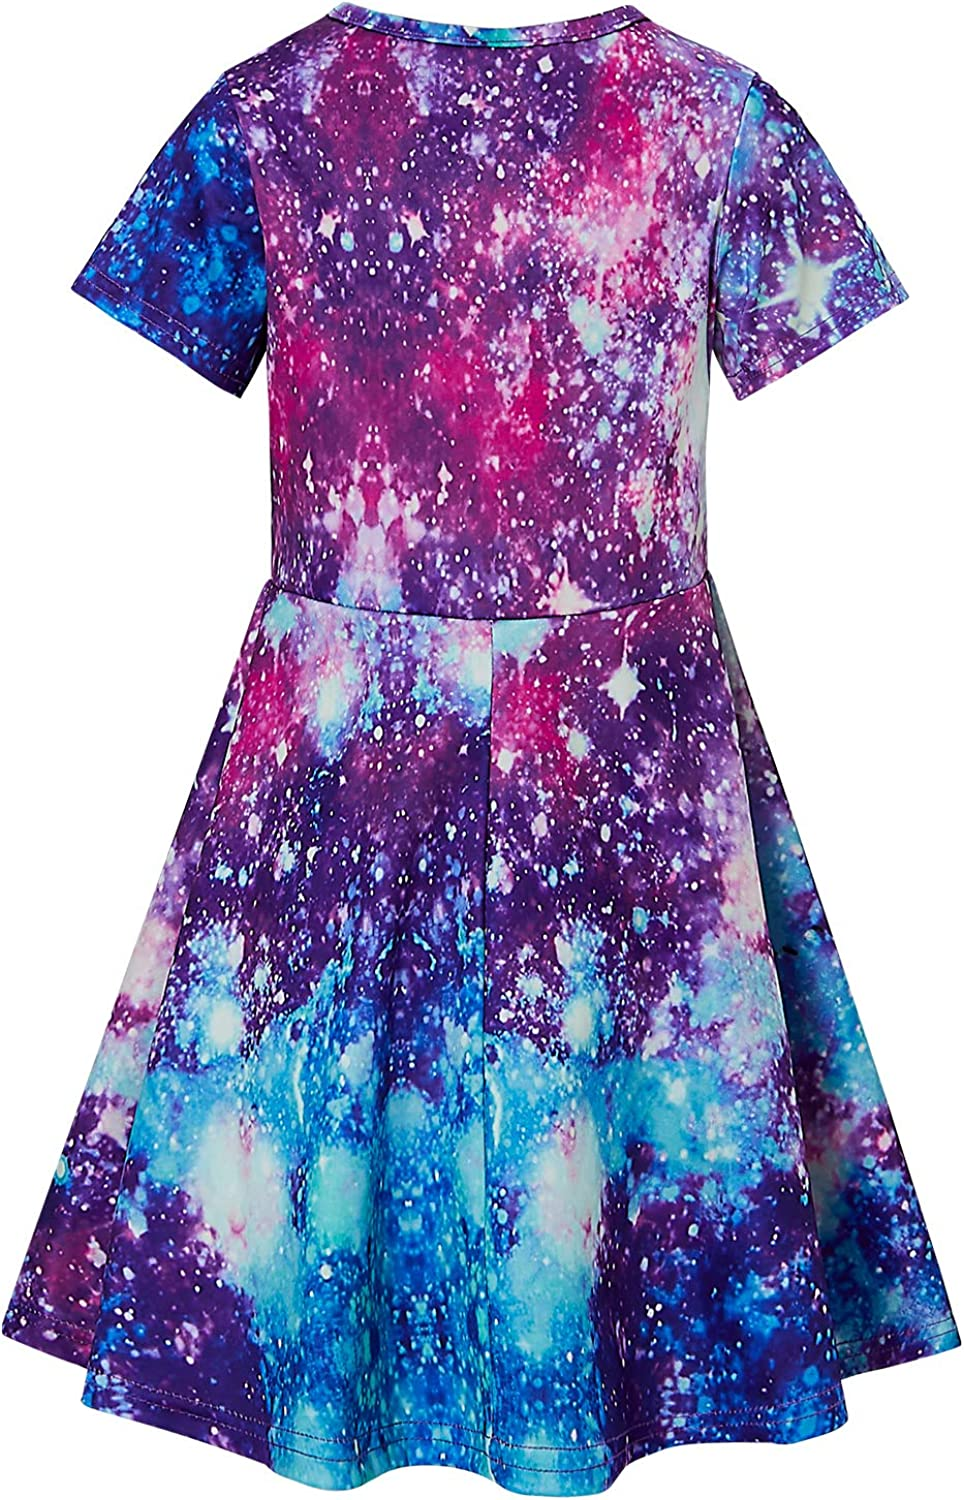 RAISEVERN Girls Short Sleeve Dress Casual Swing Skirt for Theme Holiday Party